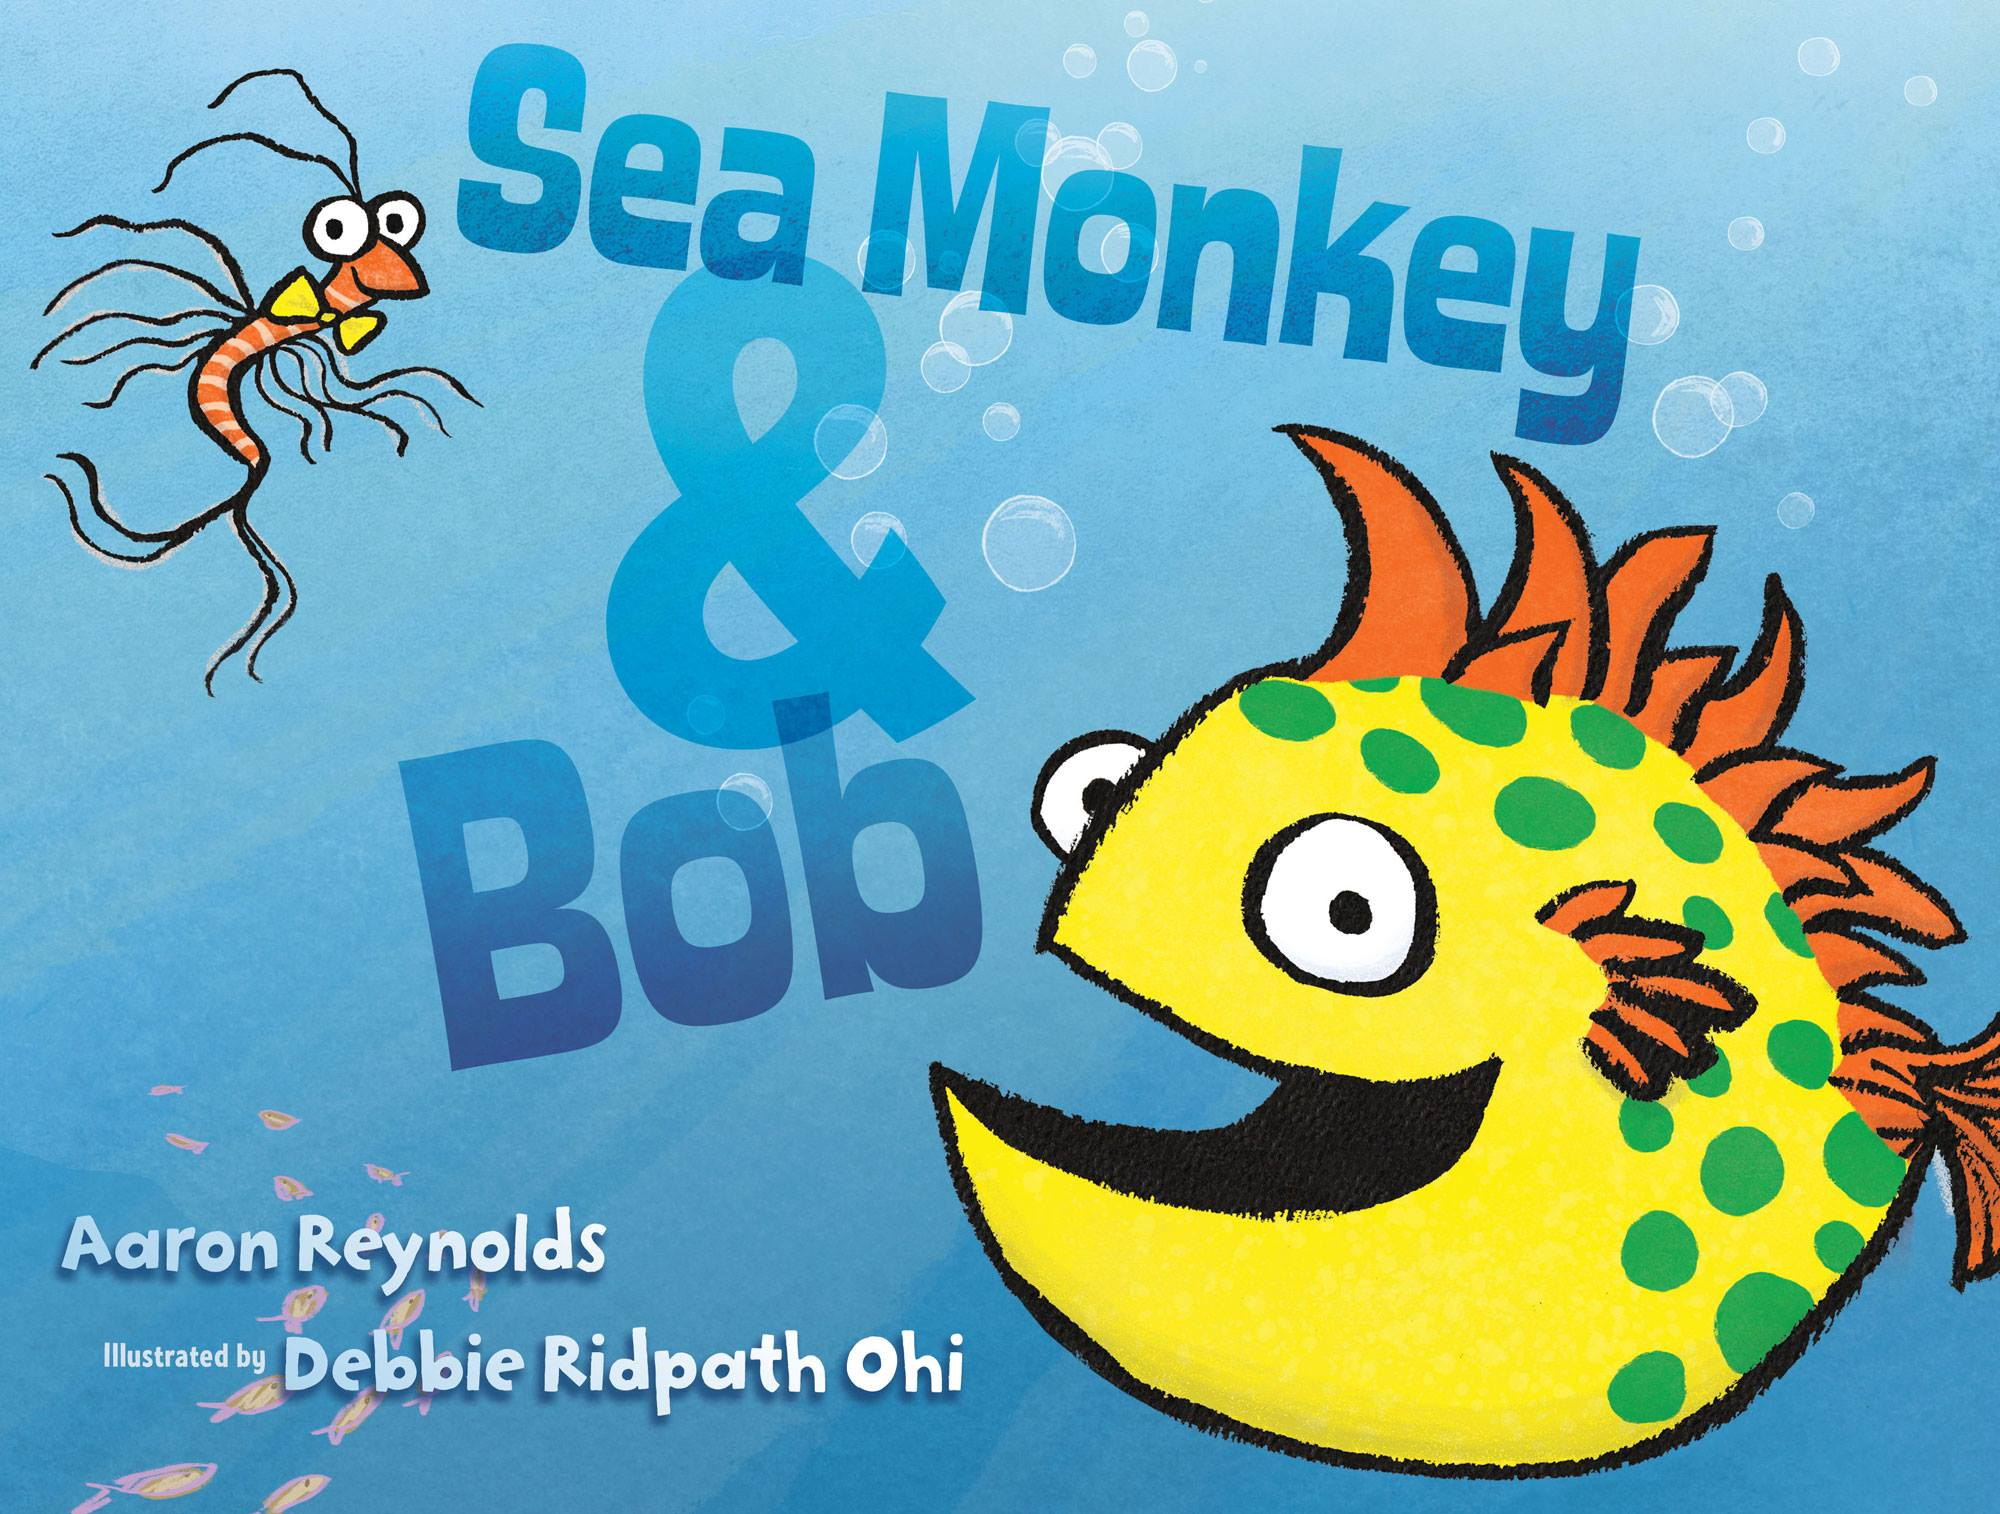 Reynolds, Aaron - SEA MONKEY AND BOB - PB - RLM PR.jpg